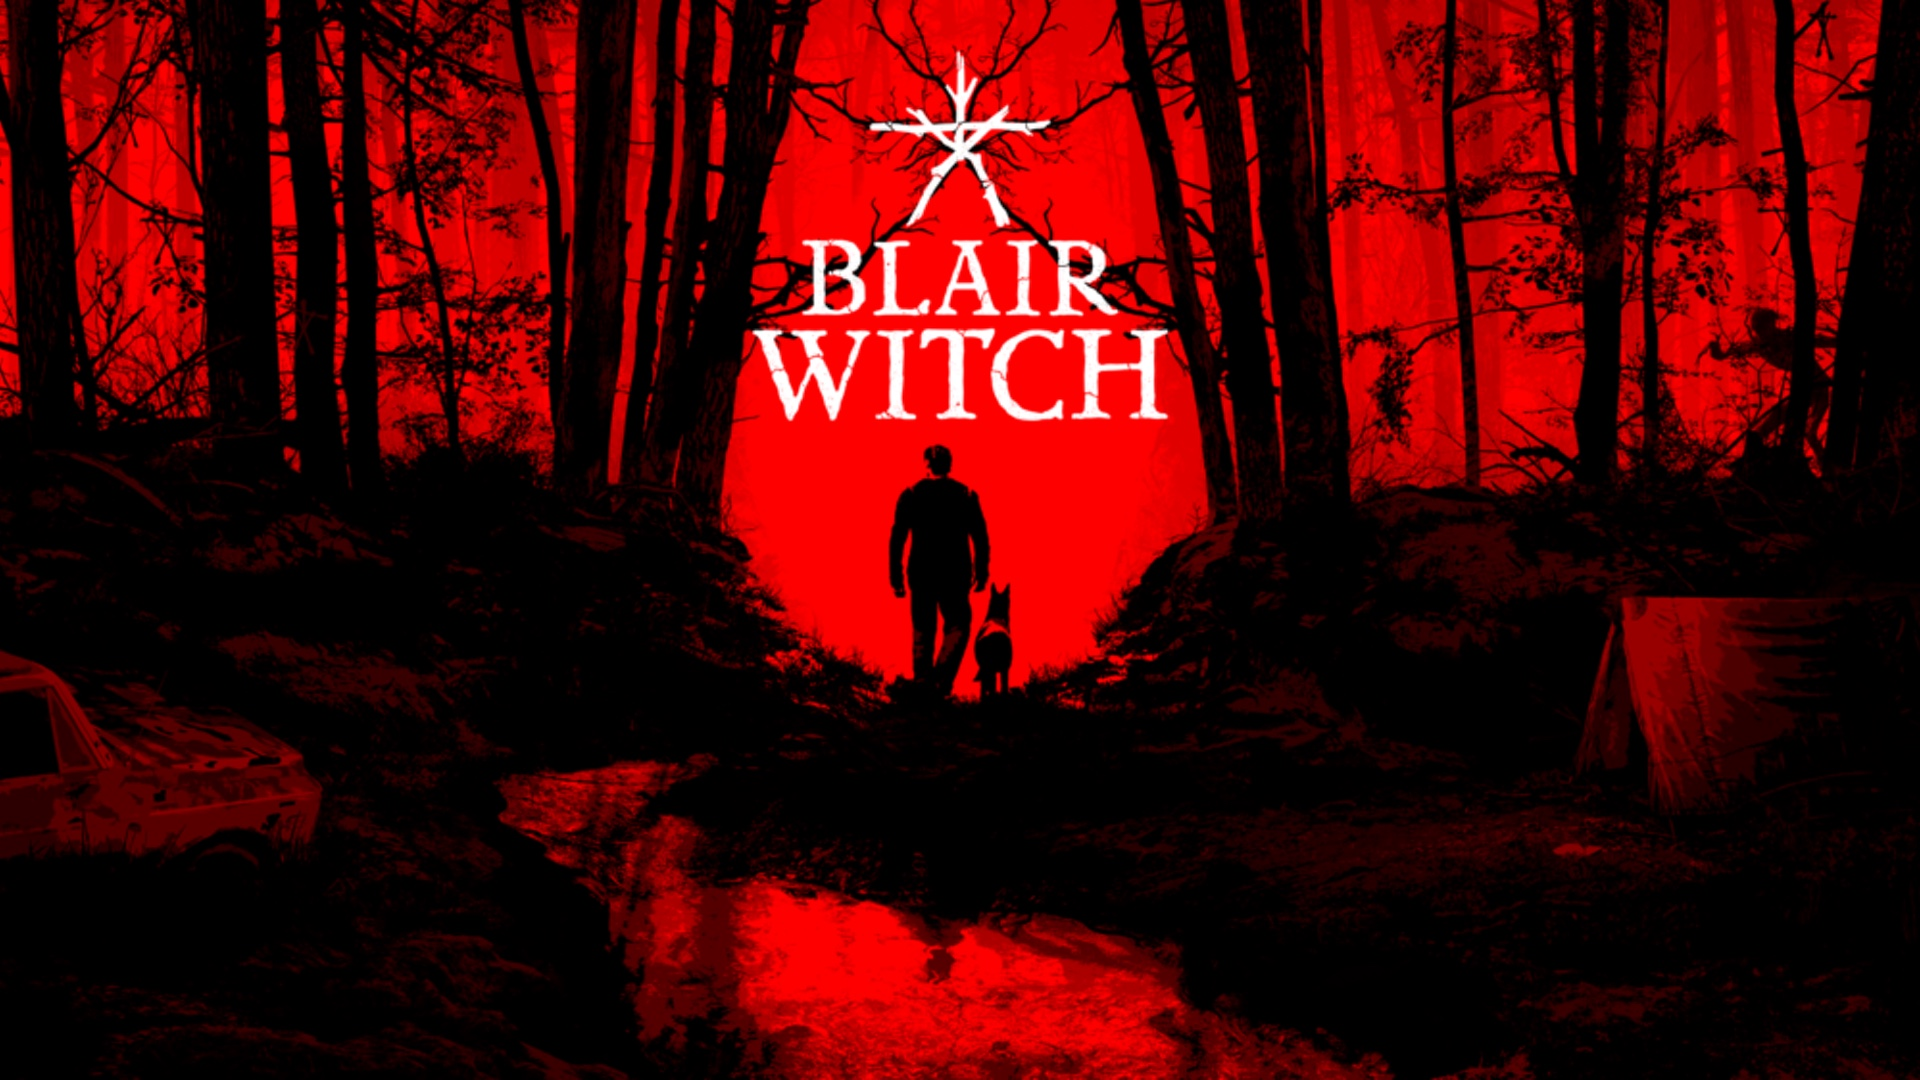 The Blair Witch Project presenta terrorífico videojuego